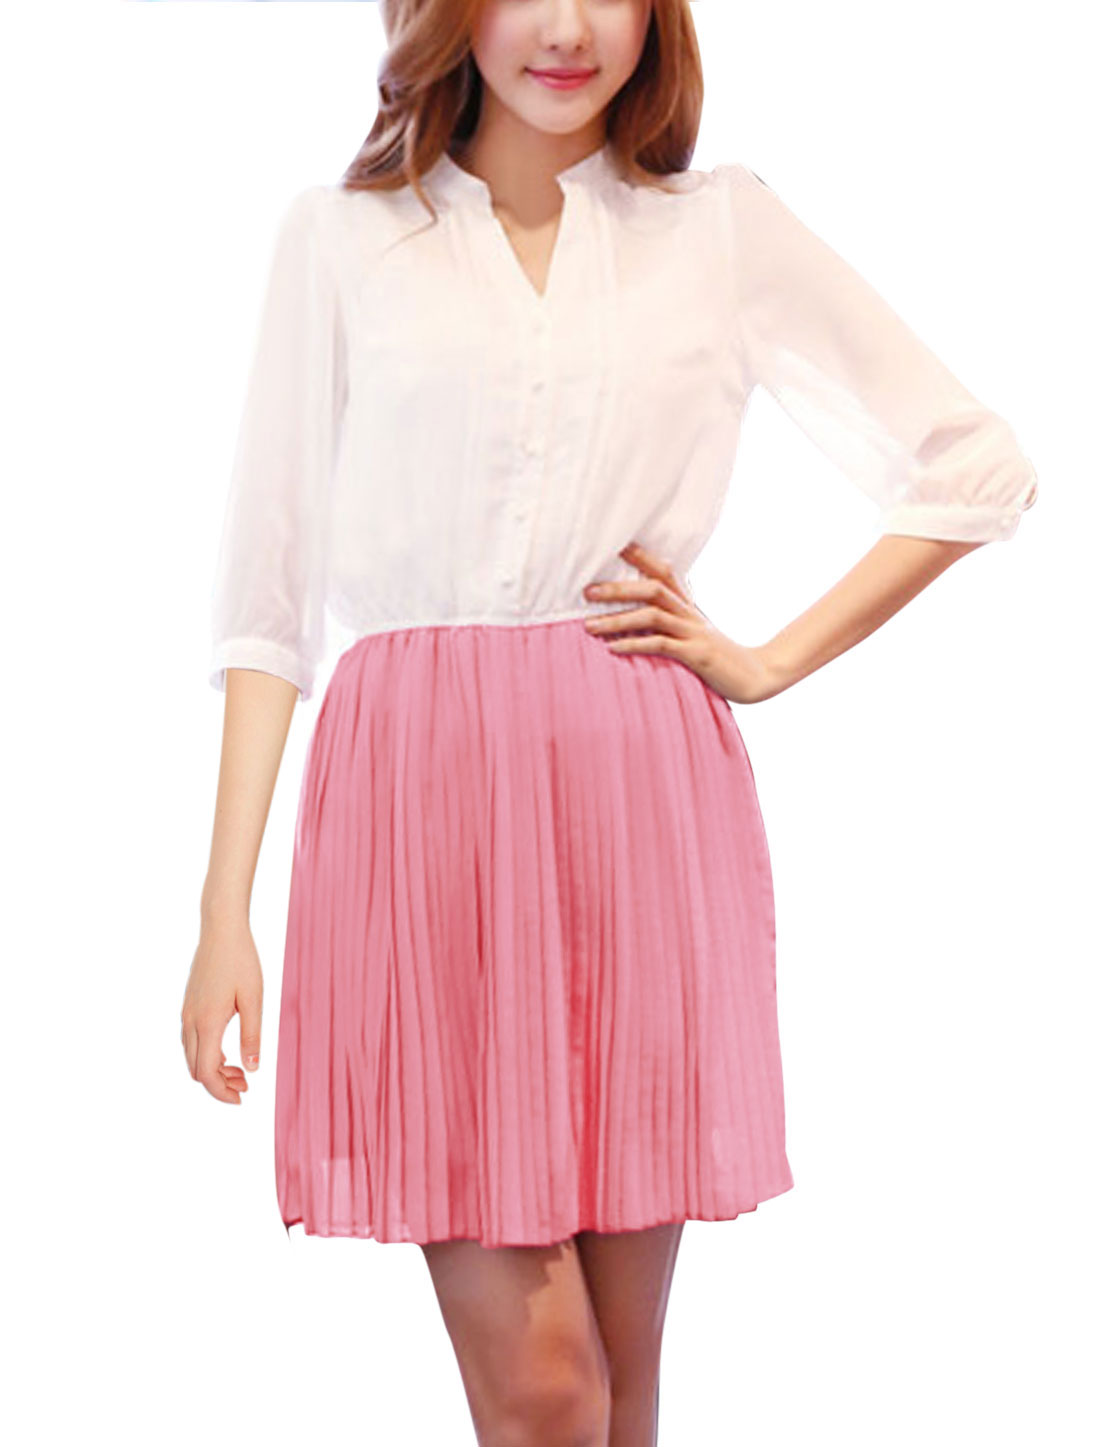 Lady Stand Collar 3/4 Sleeve 1/2 Placket Pleated Dress Pink S